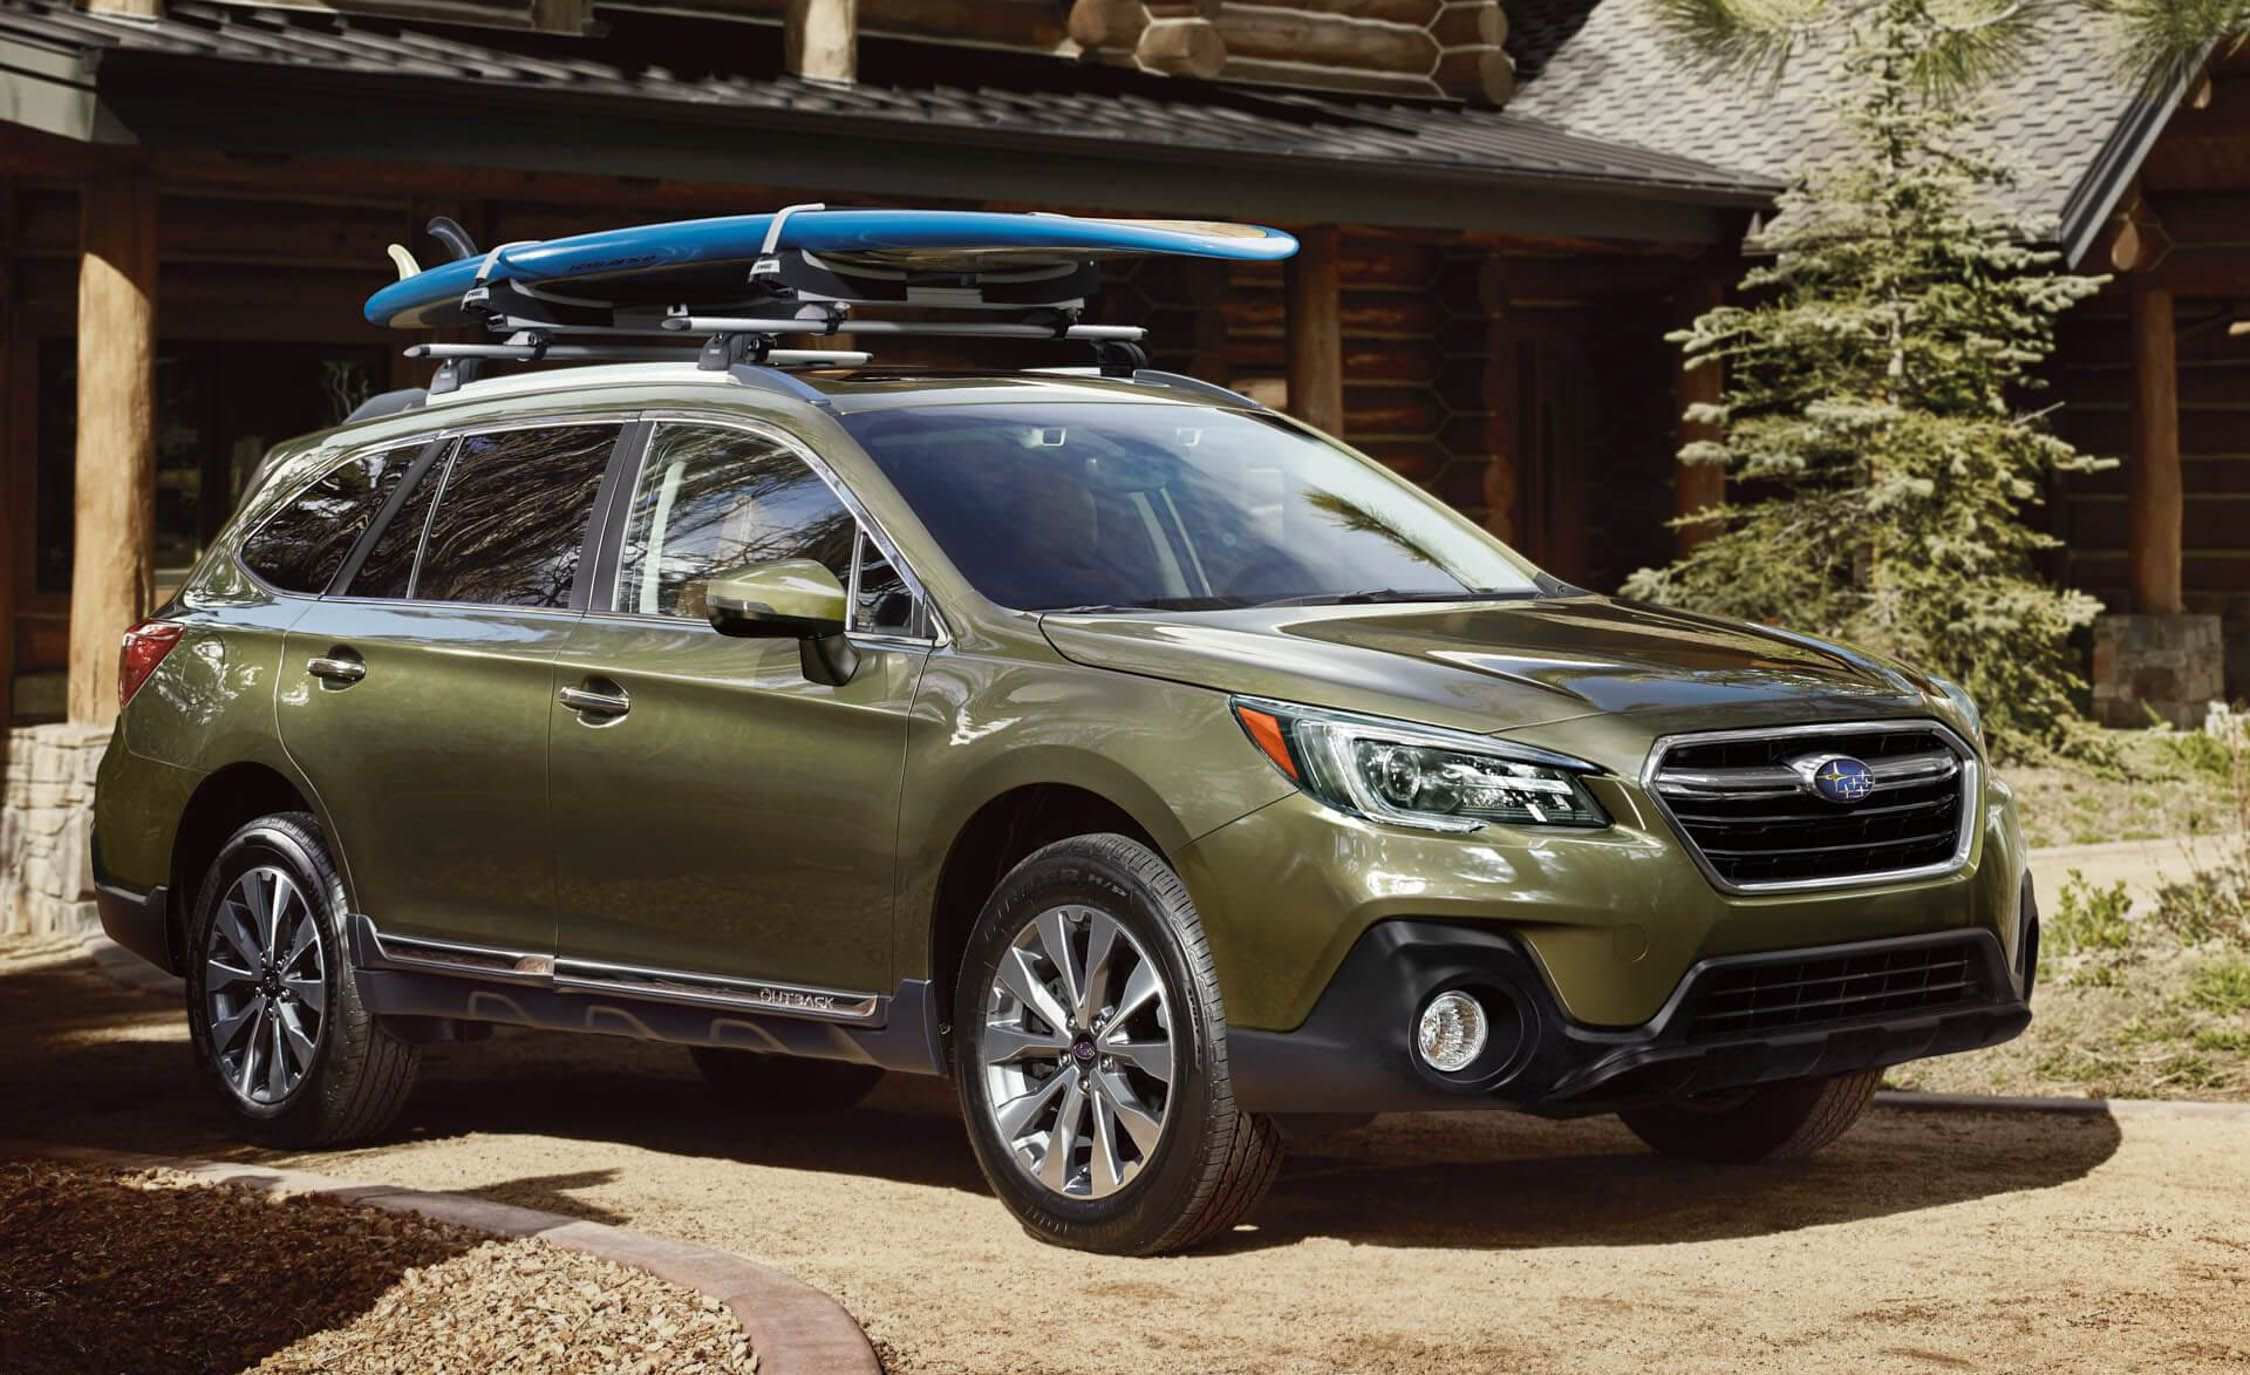 26 New 2020 Subaru Outback Exterior Colors Performance And New Engine